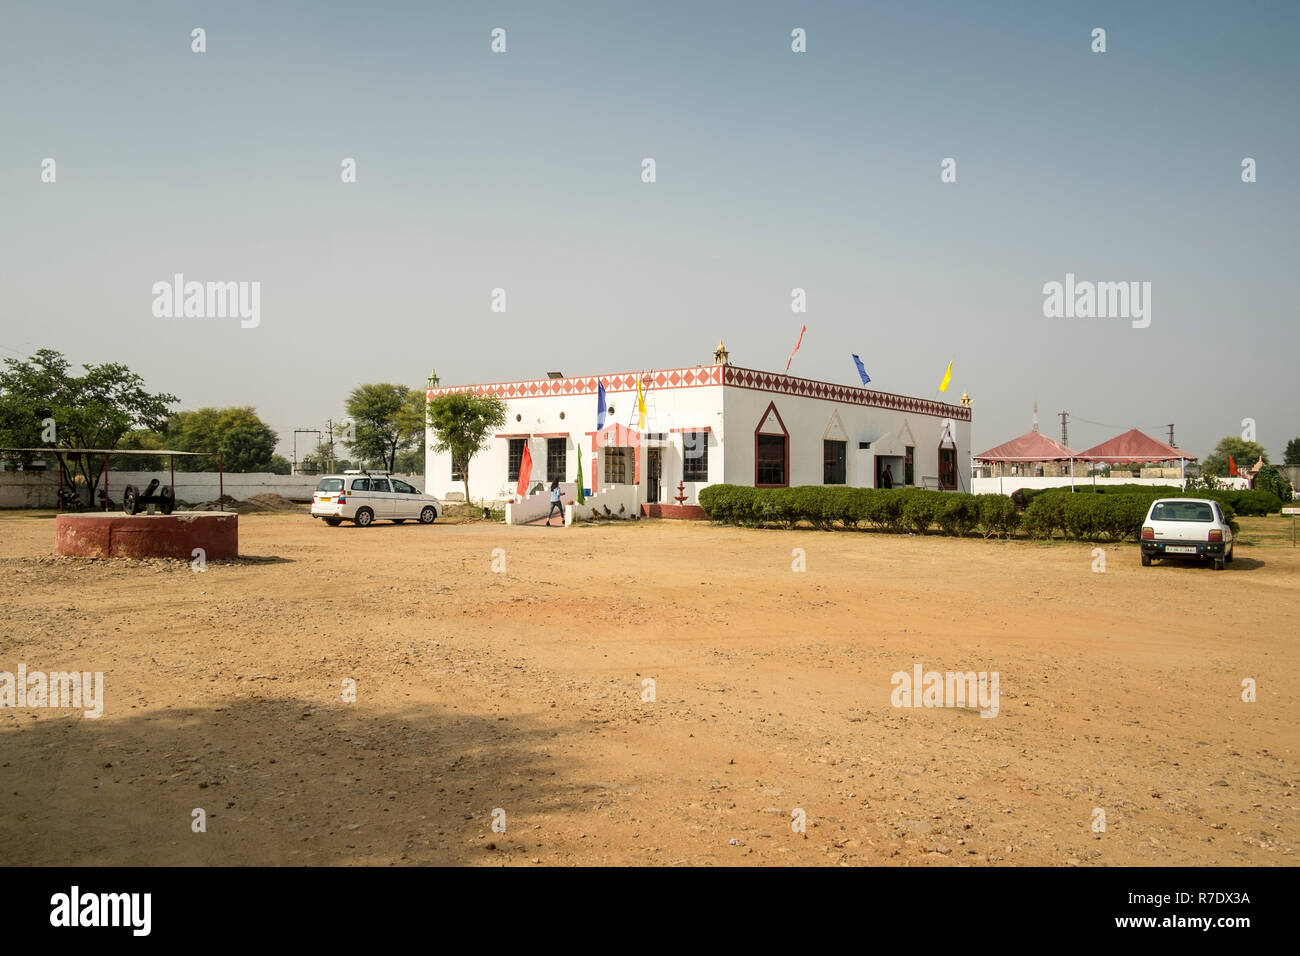 A typical upmarket stop over Dhaba targeted at international tourists on the way to Sawai Madhopur from Jaipur - Stock Image